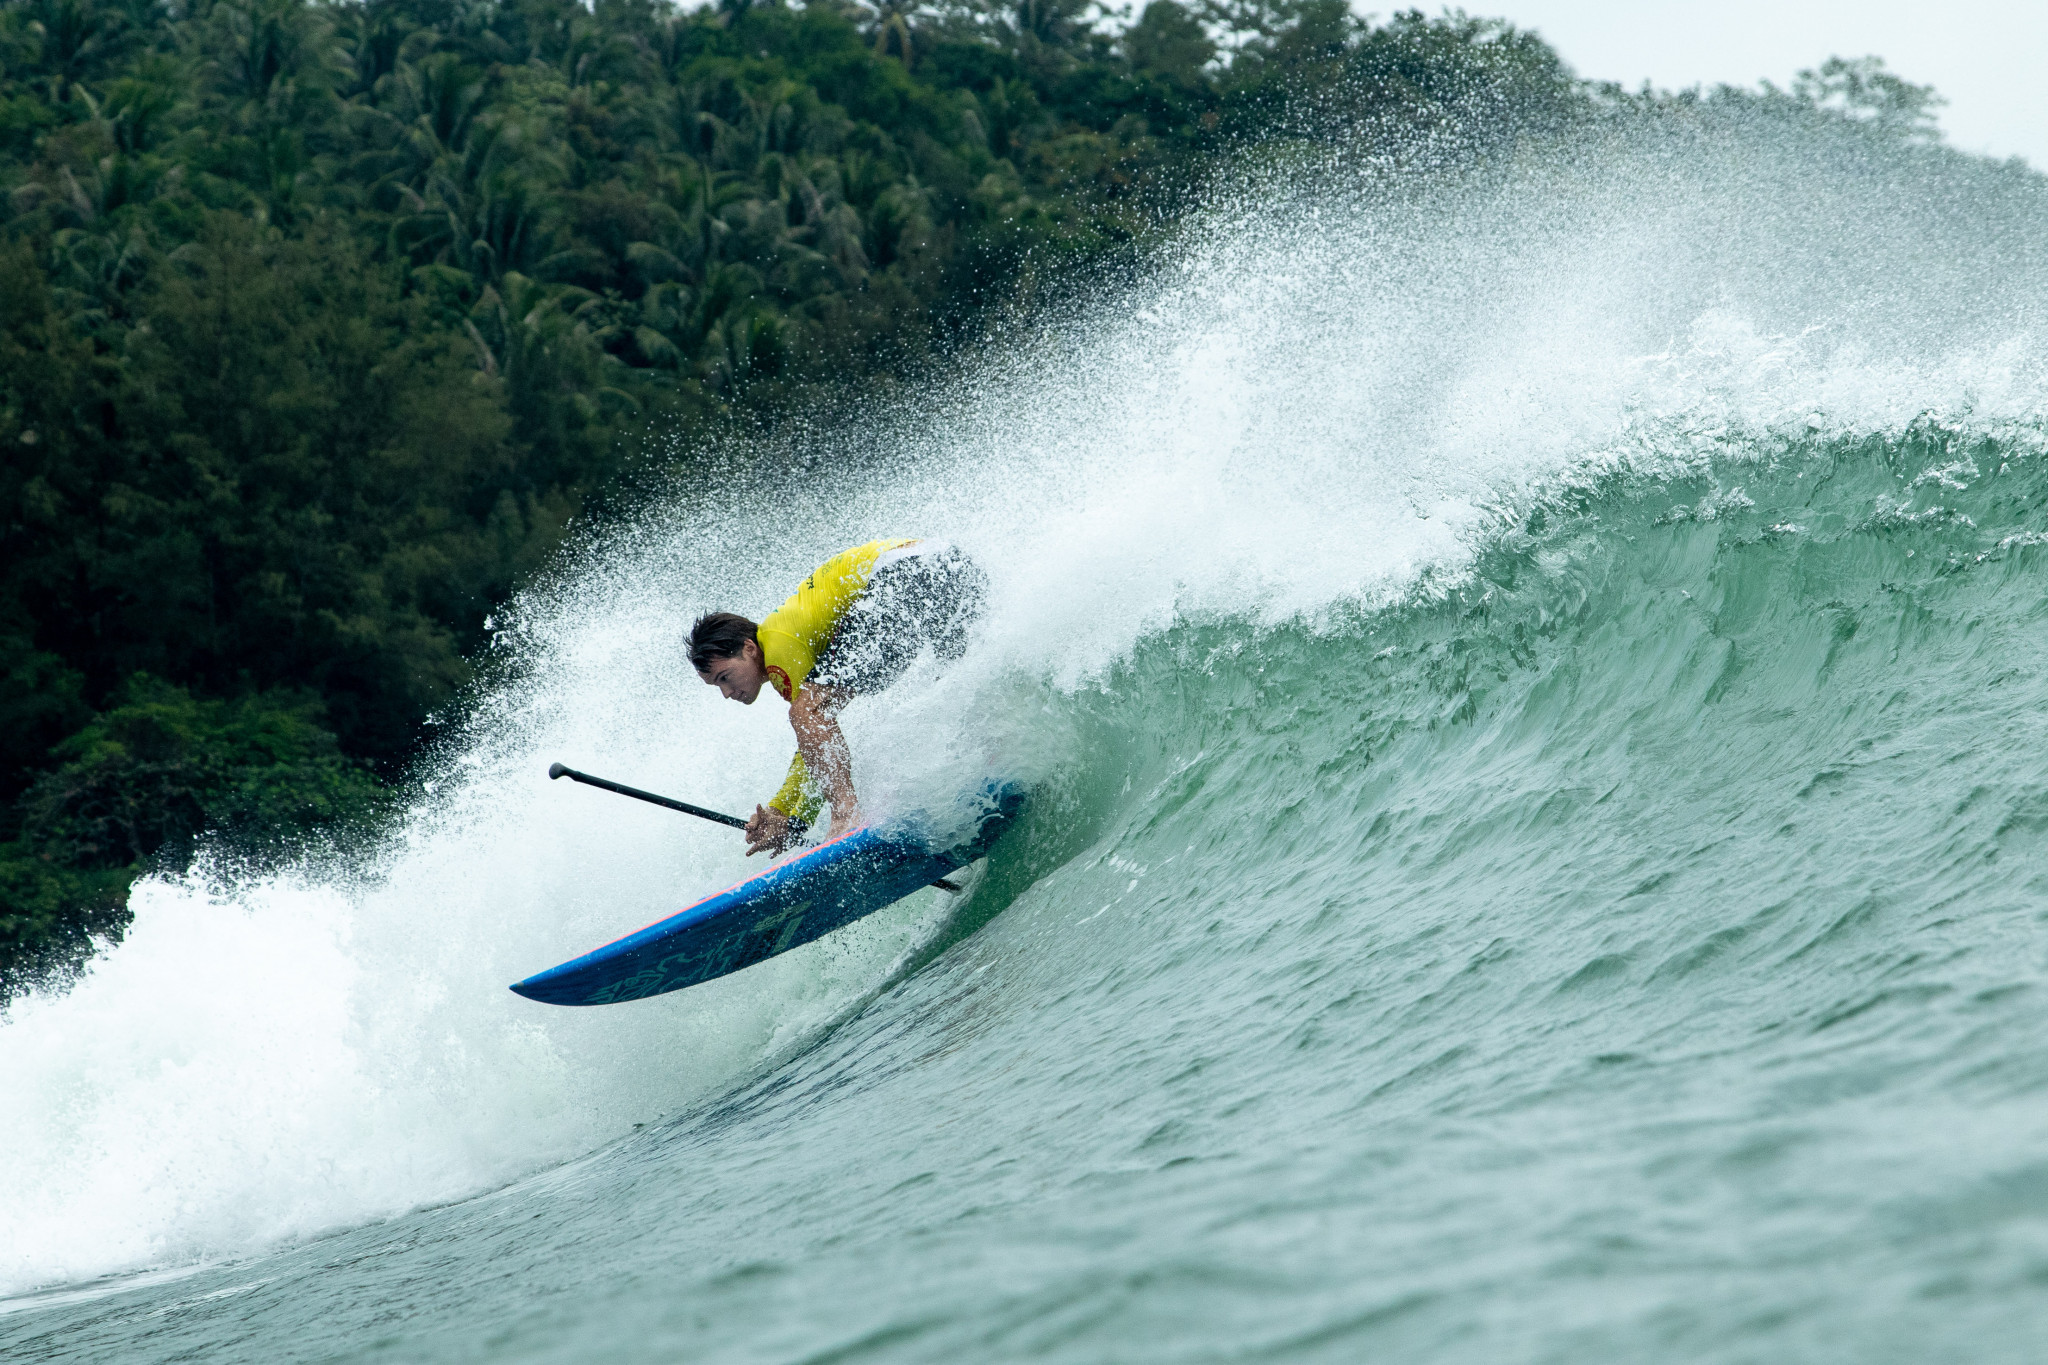 Former world champion Sean Poynter surfs his way into the men's main event final ©ISA